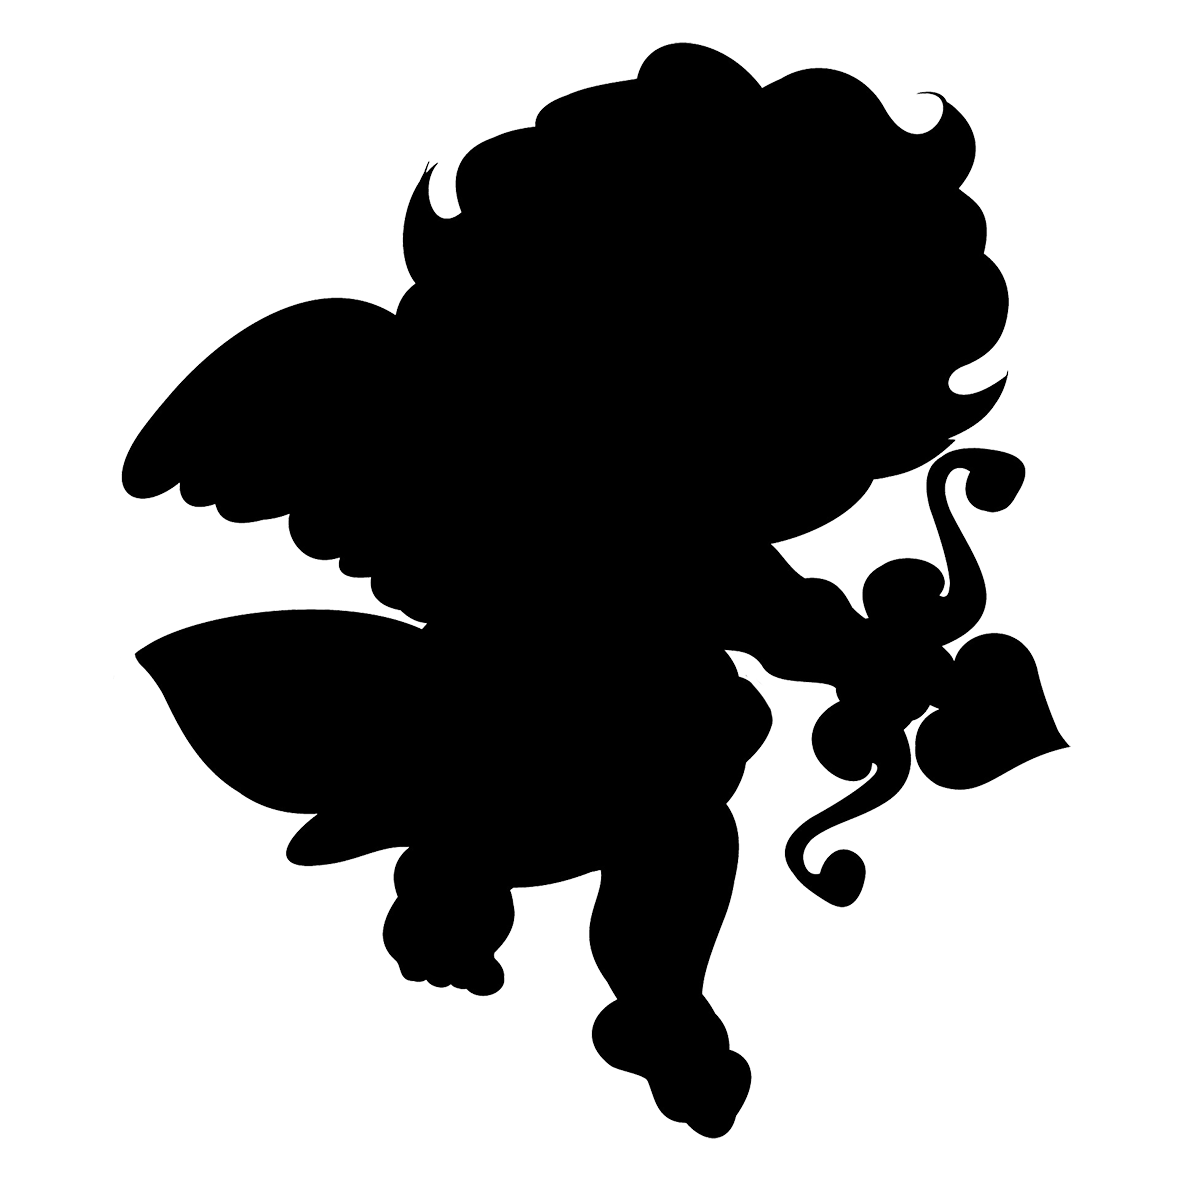 1181x1181 Cupid Silhouette.png Clipart Silhouette